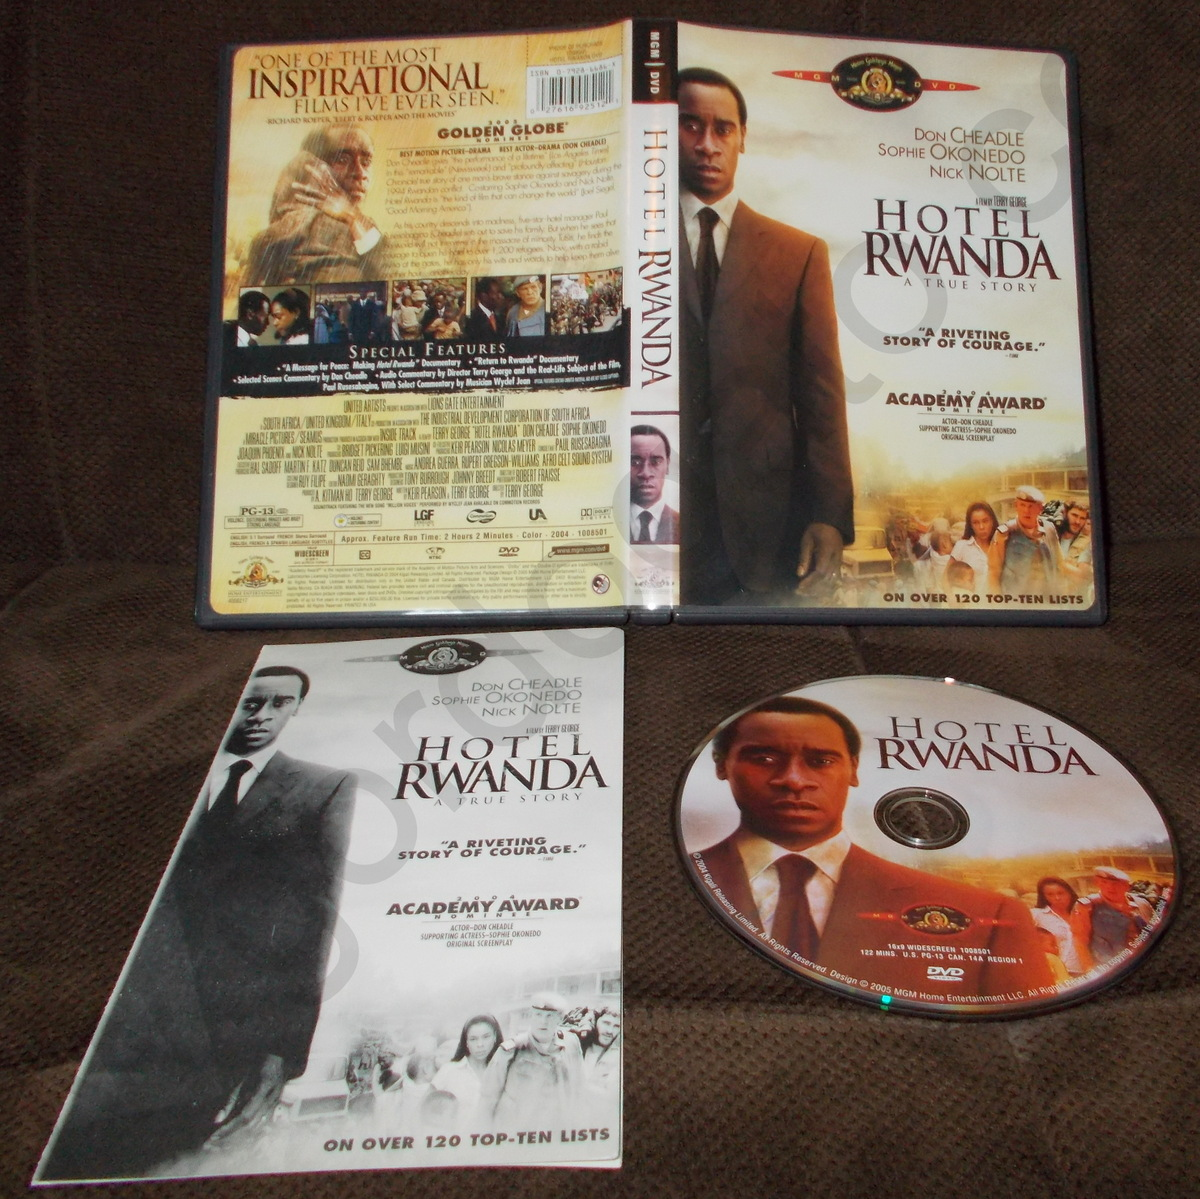 hotel rwanda analysis Film critique of hotel rwanda do you remember that feeling you had when you first watched schindler's list do you remember the sadness that you felt and how you wished you had been there to kill all of those nazi bastards before they had a chance at genocide that was certainly how i felt,.